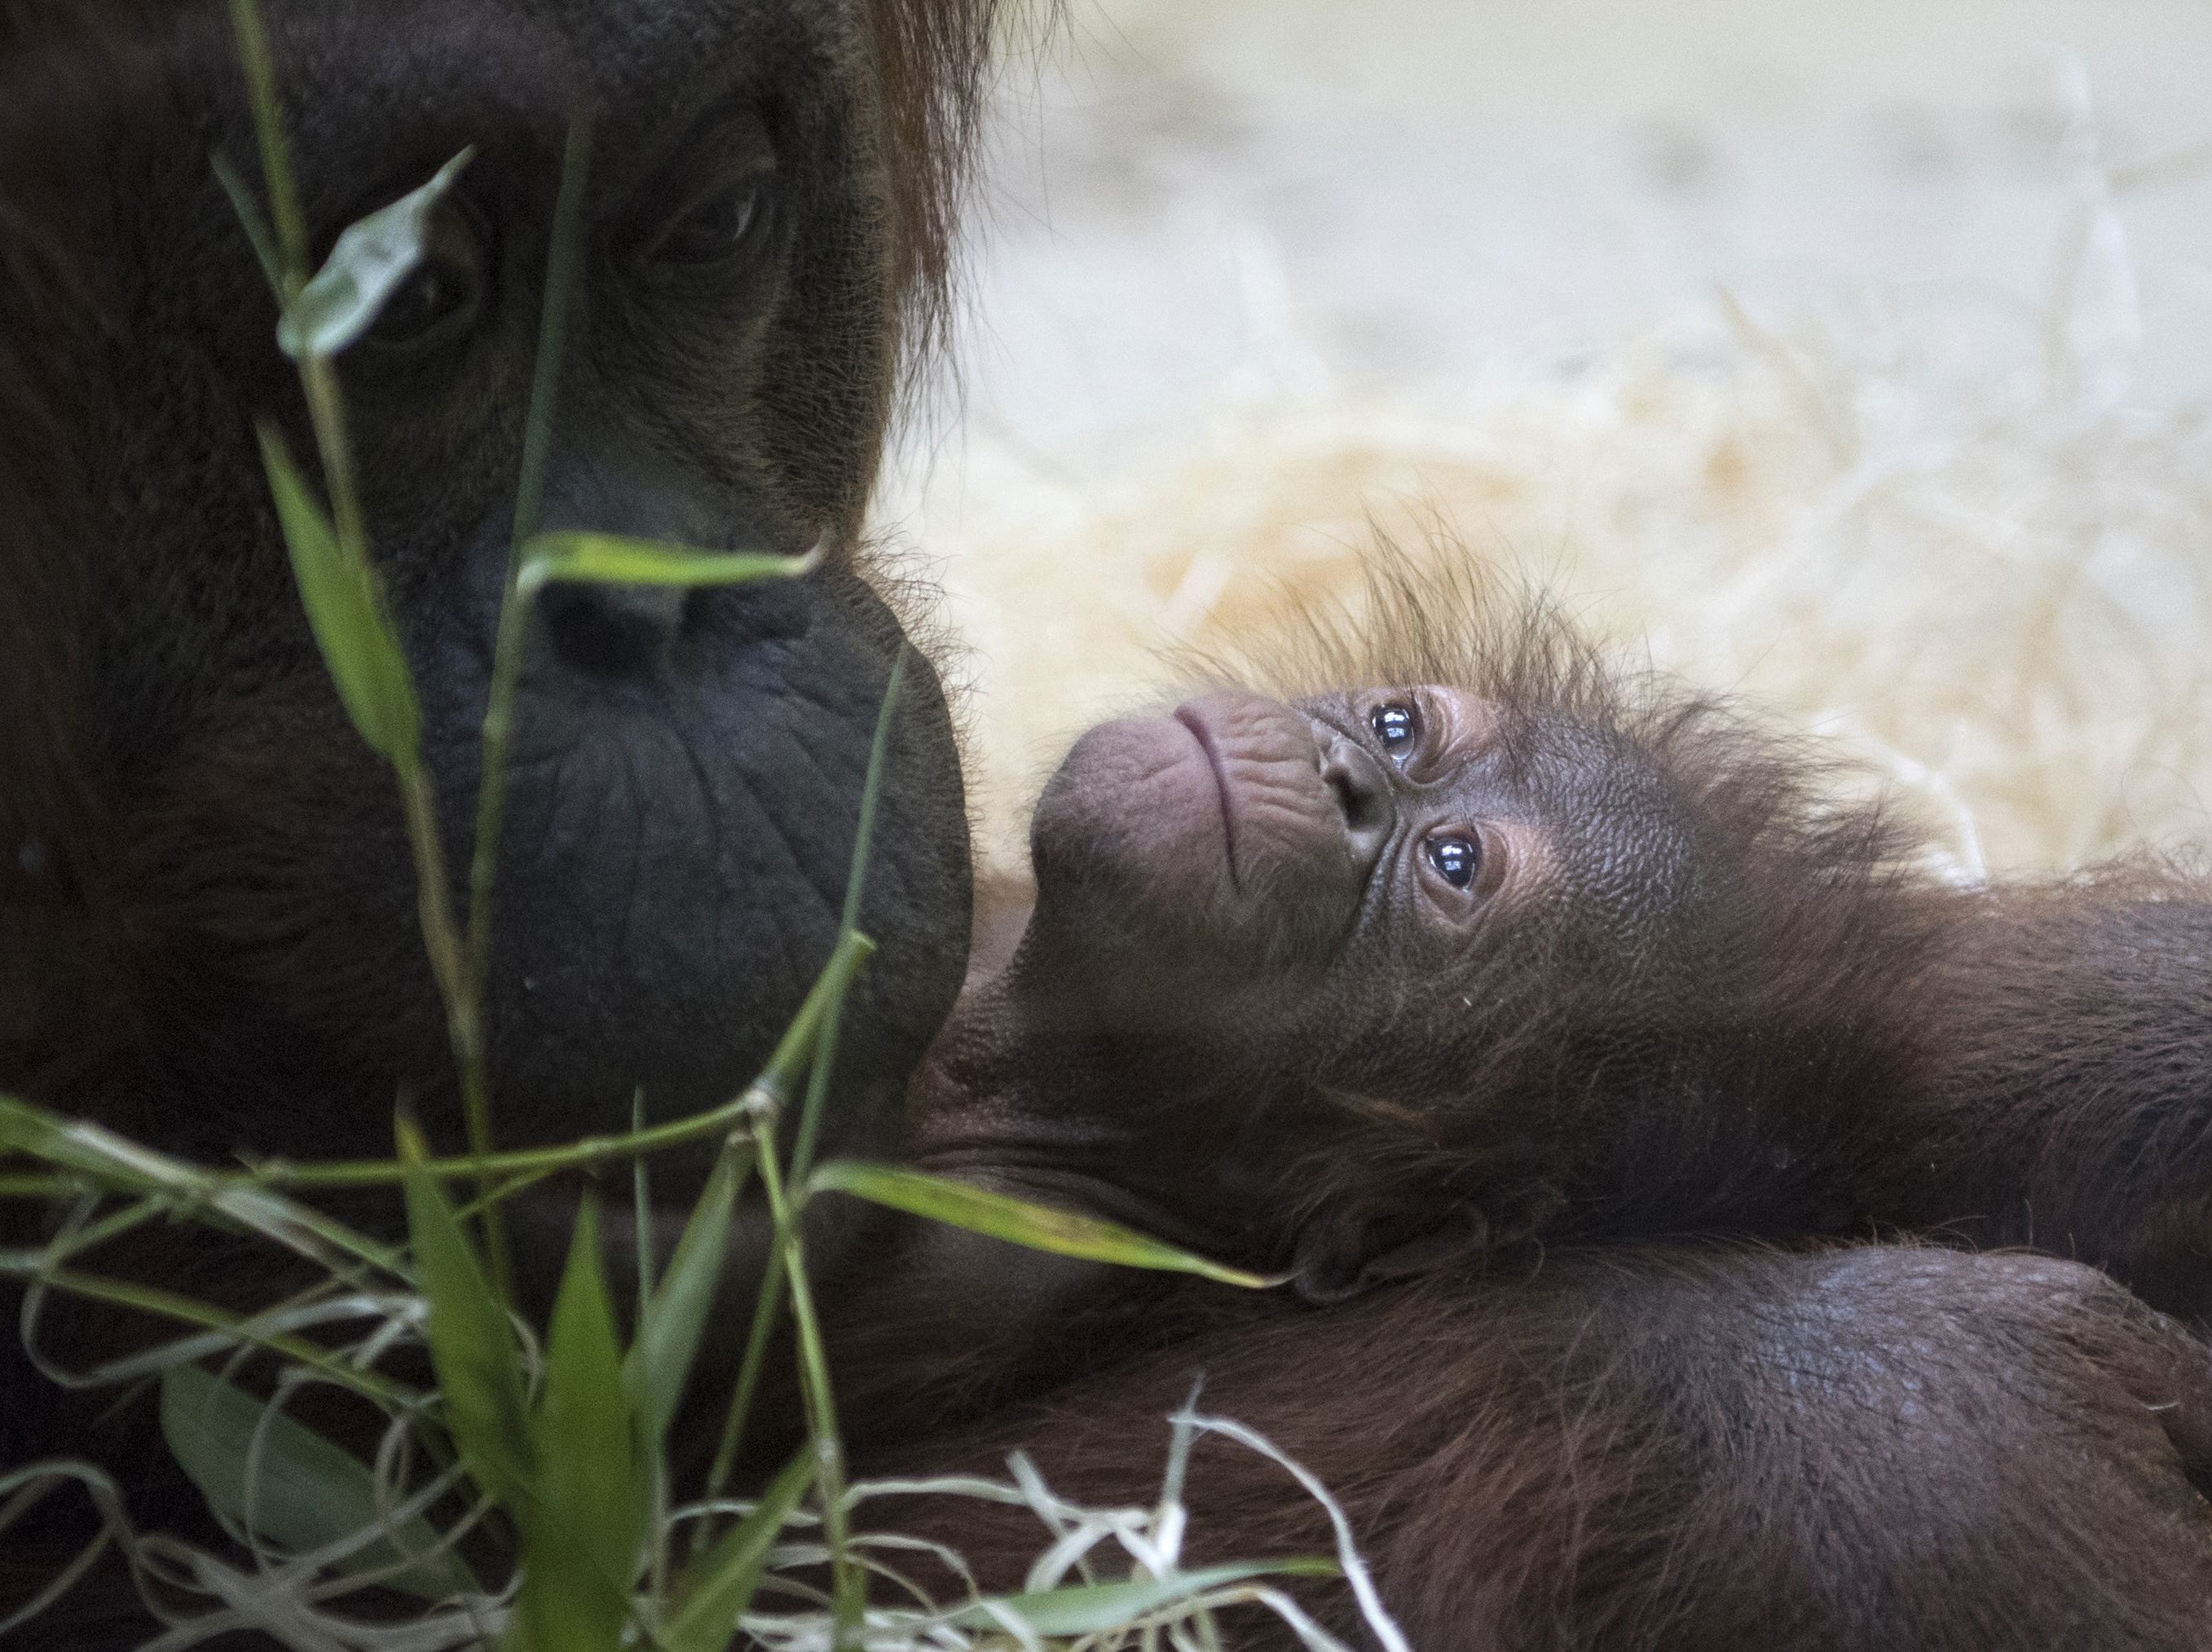 "Borneo orang-utan ""Theodora"" (L) looks at her 8-day old baby ""Java"" in their enclosure at the ""Menagerie du Jardin des Plantes"" zoo in Paris on October 24, 2018. - The last birth of an orangutan at the menagerie dates back to 2005, according to the National Museum of Natural History (MNHN). Borneo orangutans are on the International Union for the Conservation of Nature (IUCN) Red List as Critically Endangered animals."